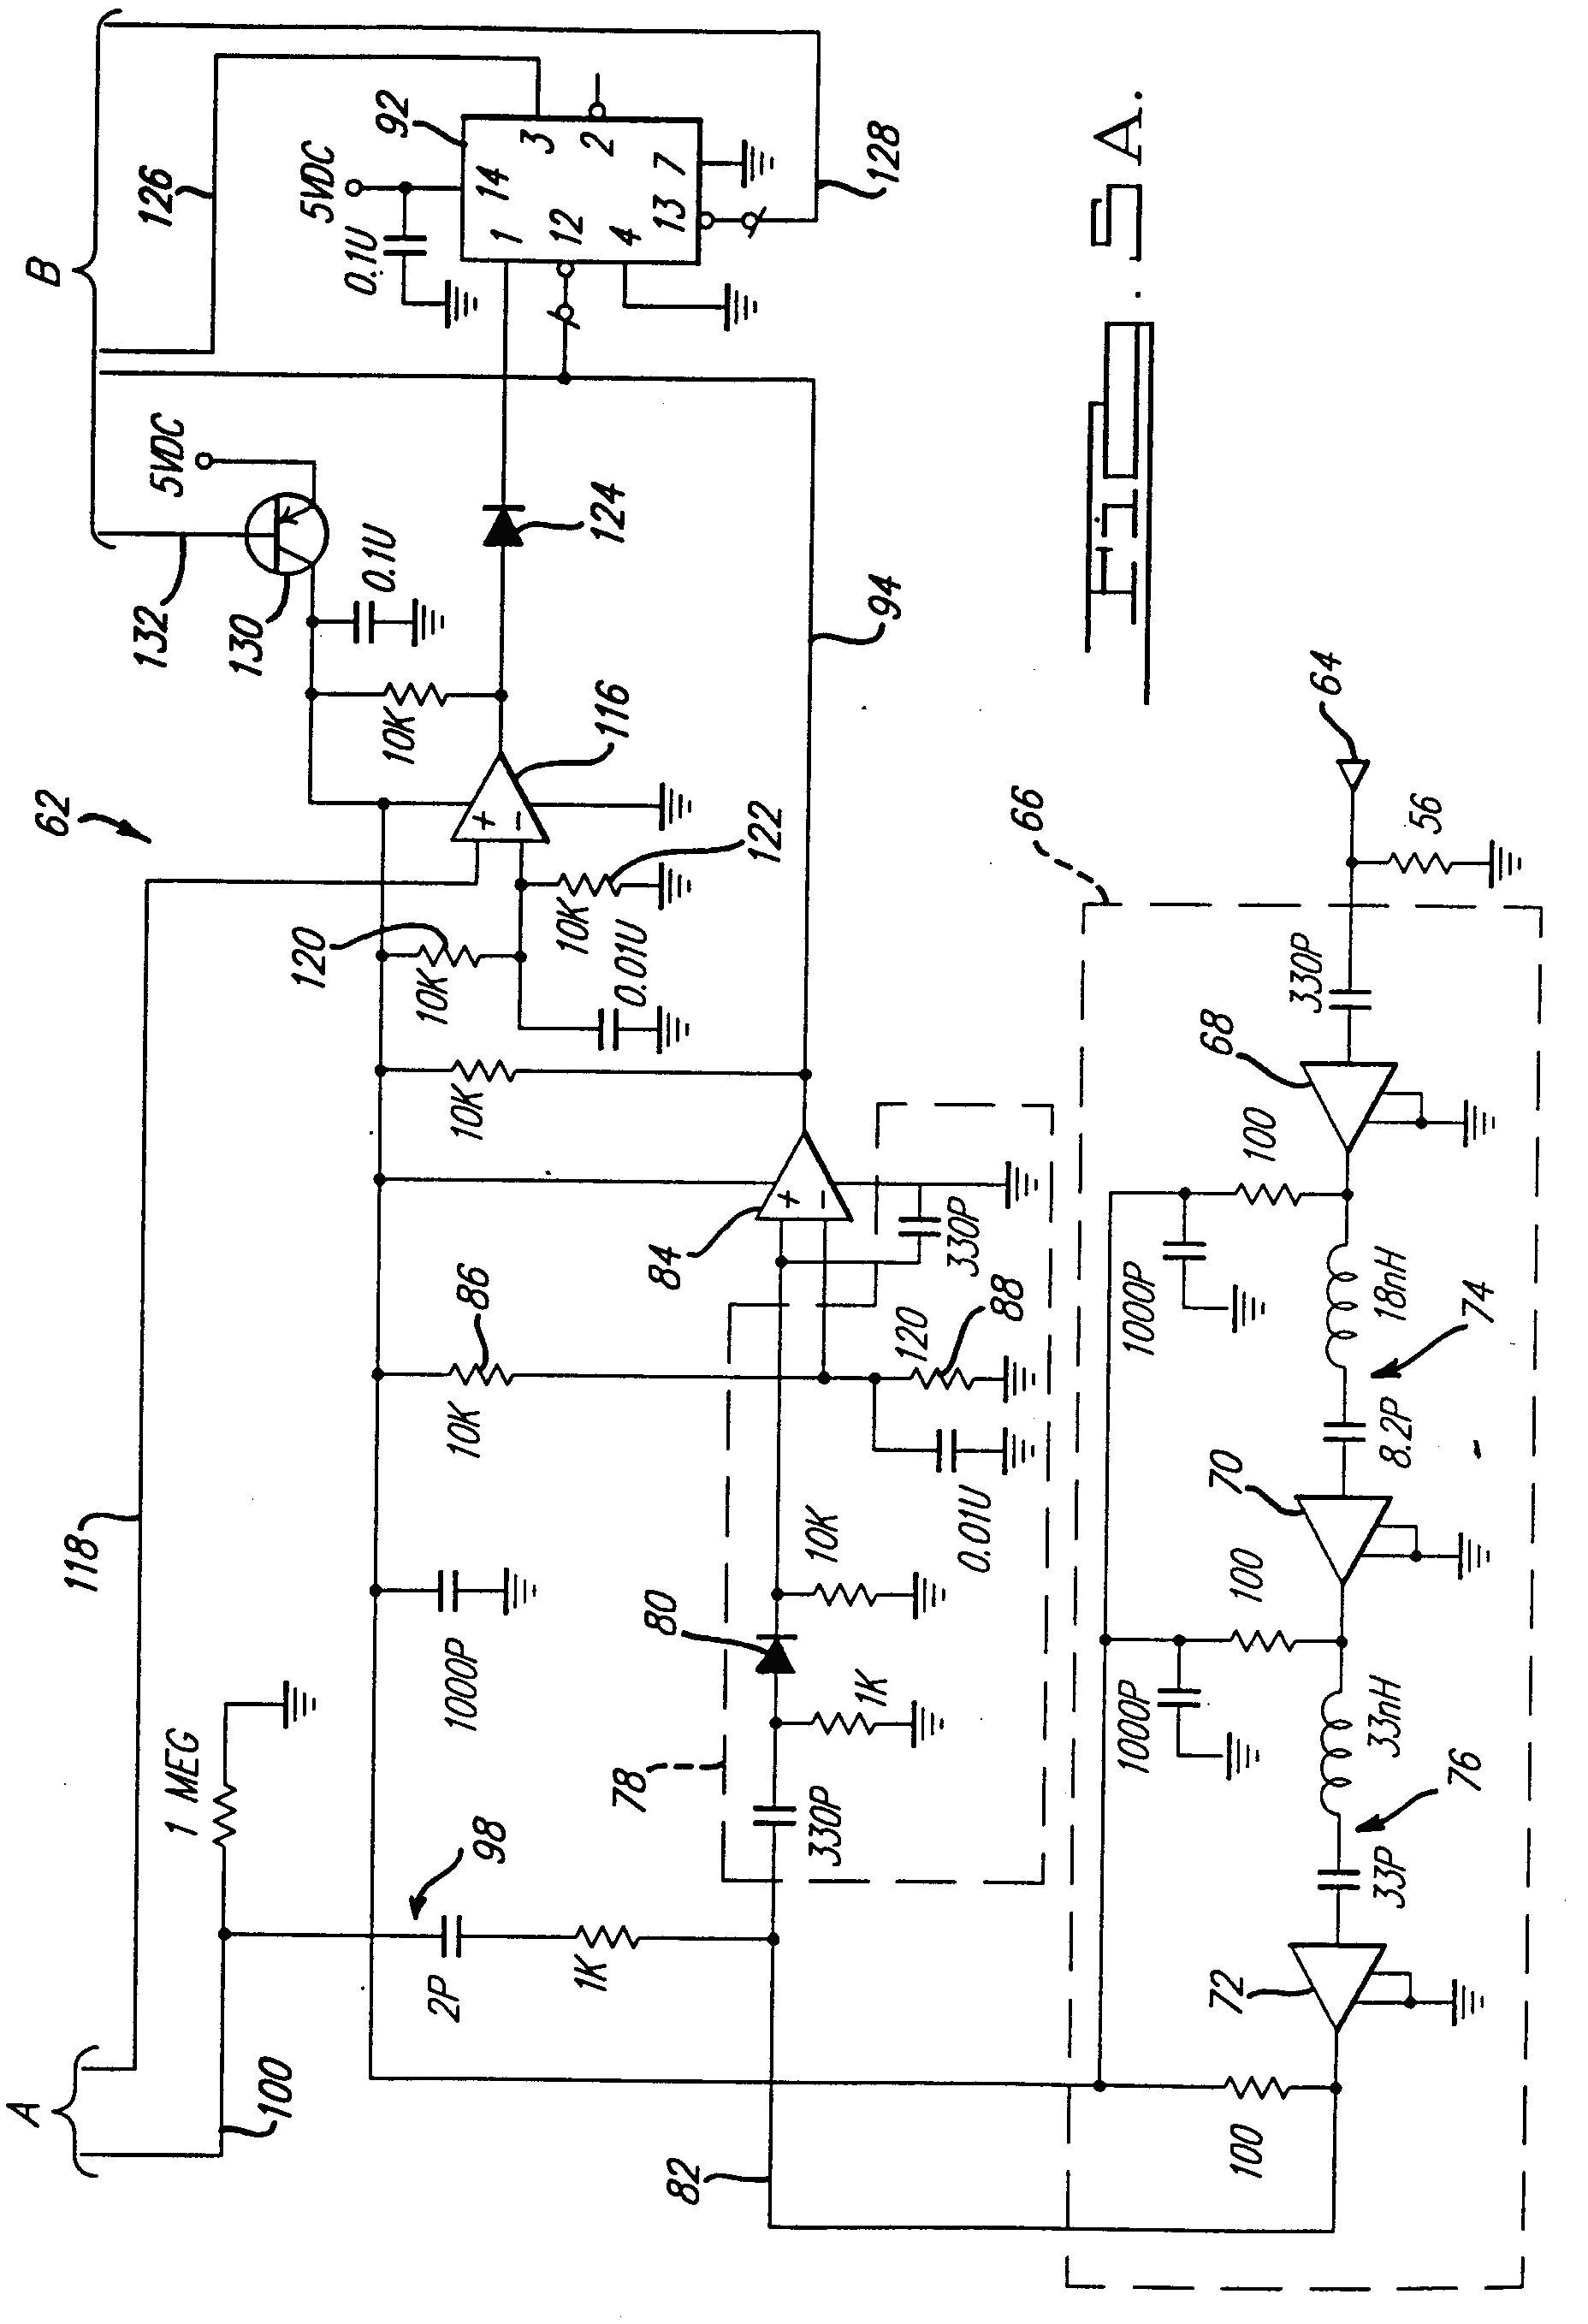 Remote Relay Schematic